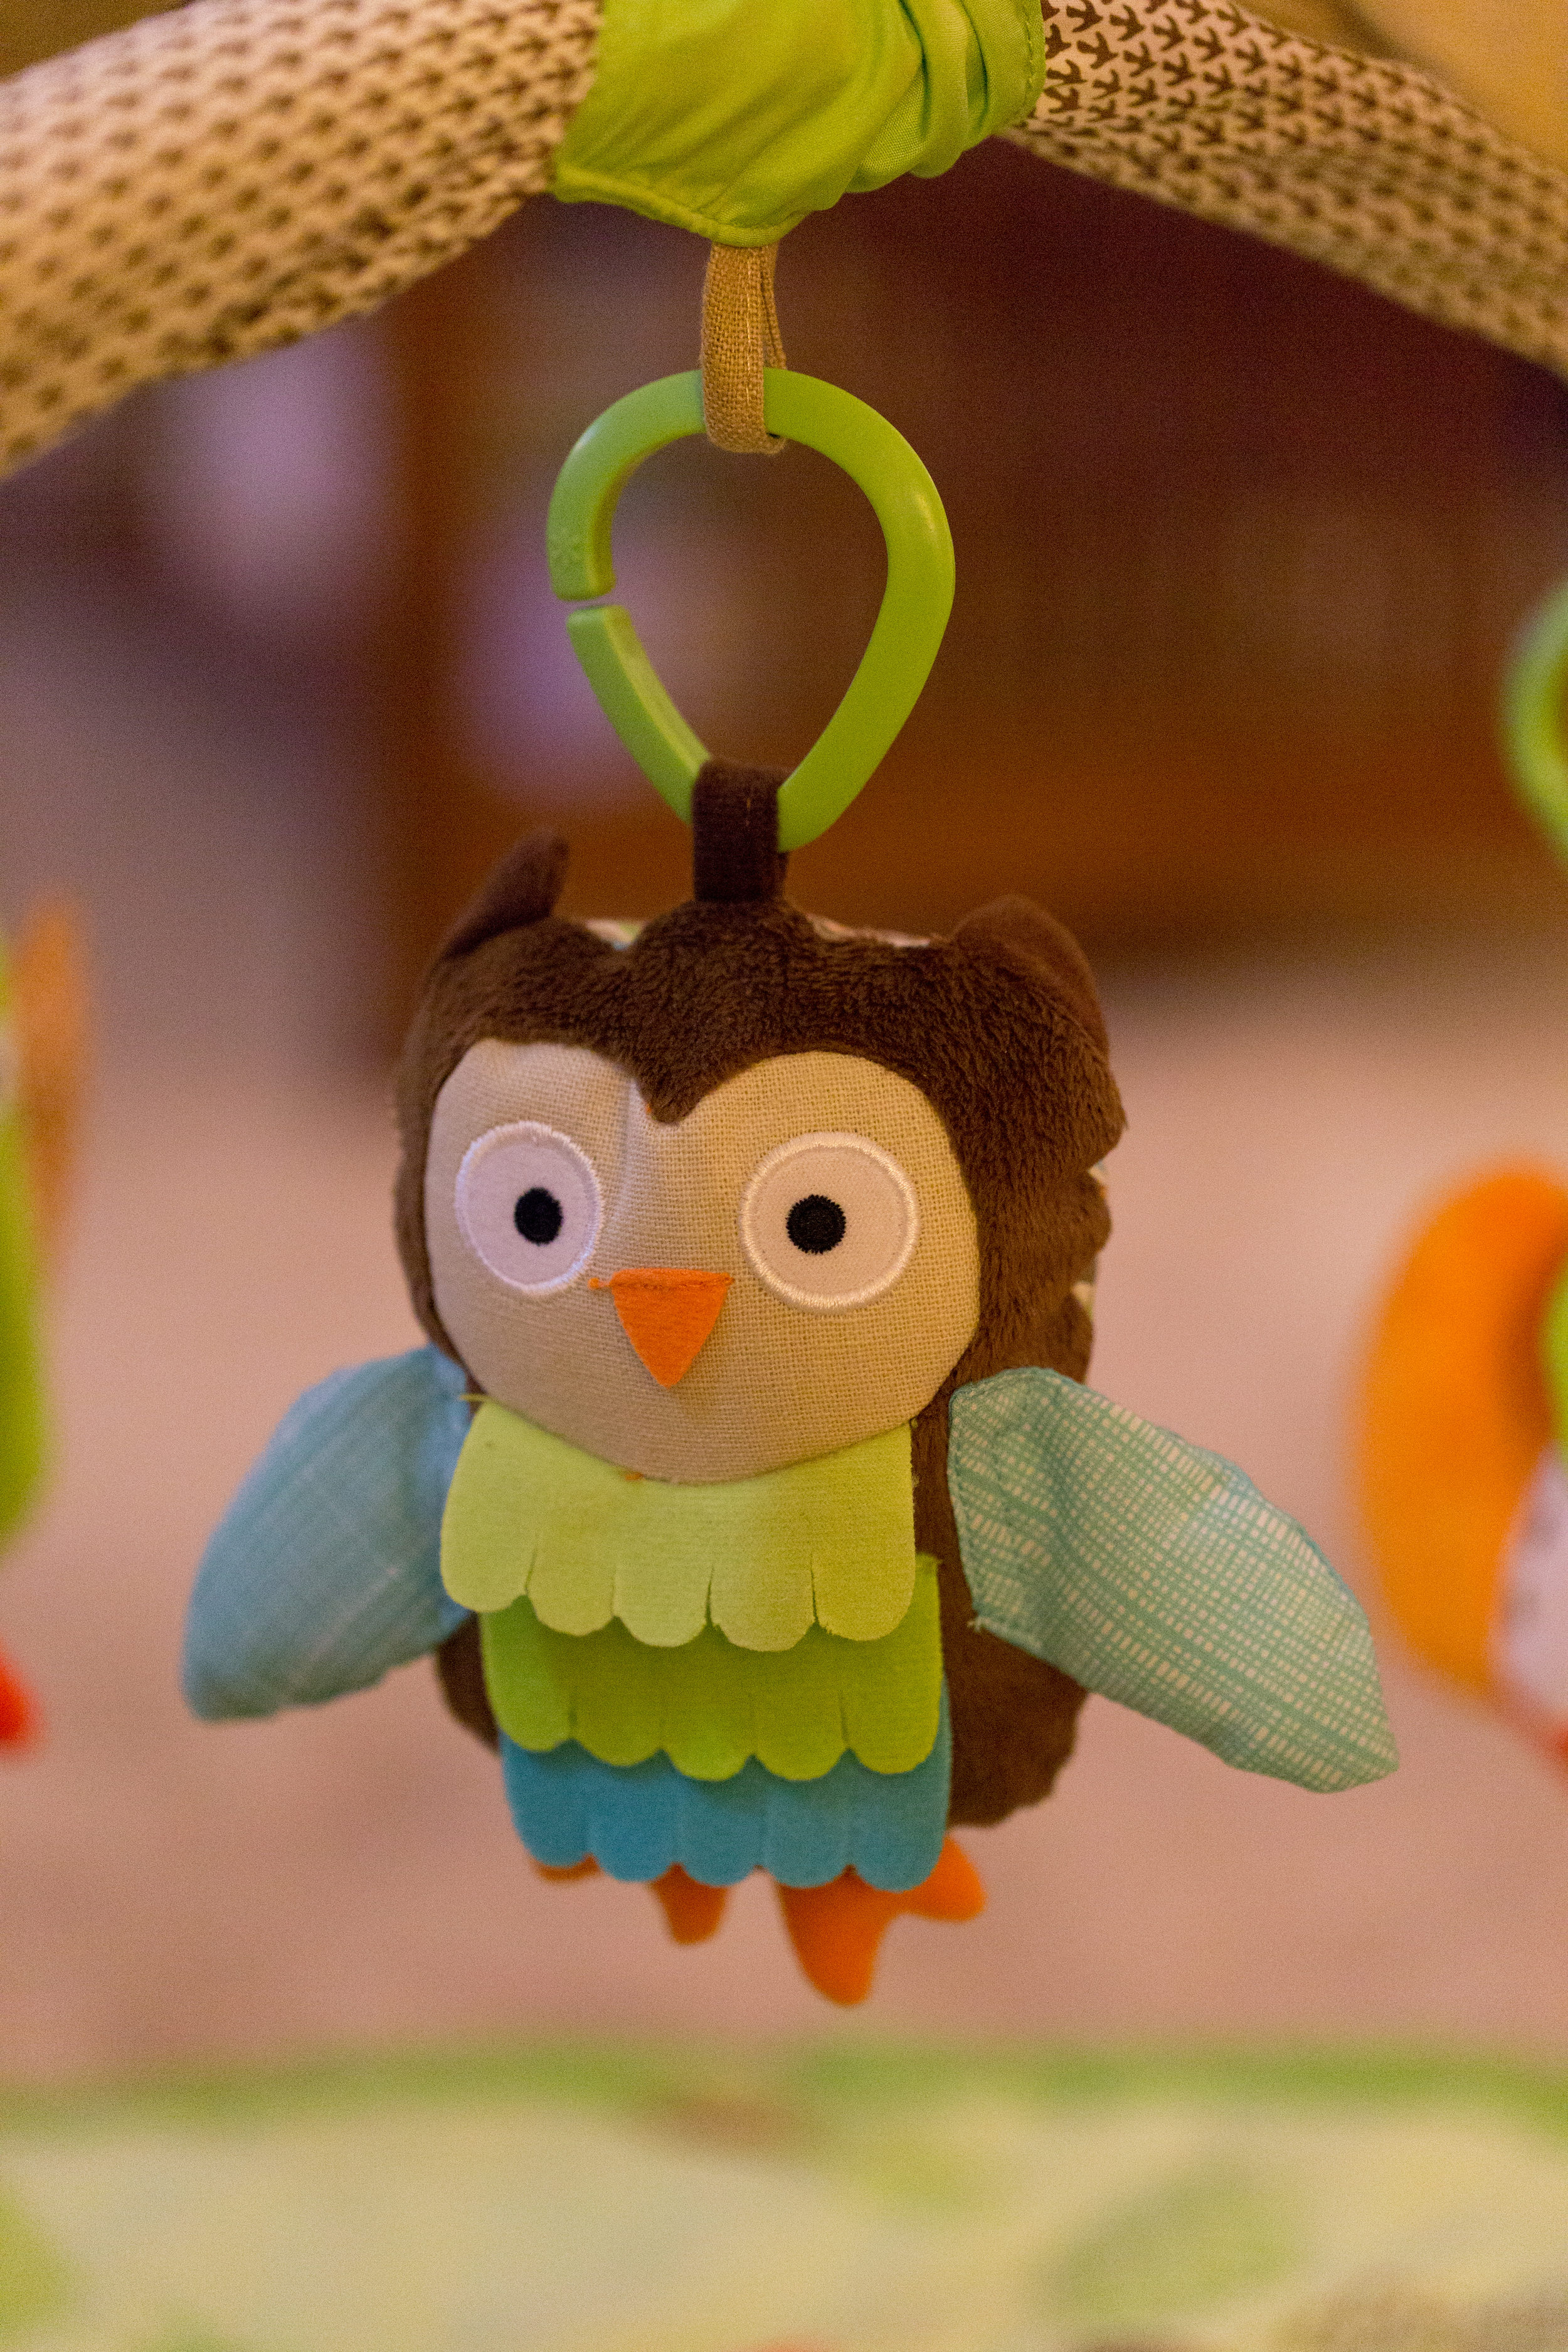 toy owl on baby play gym